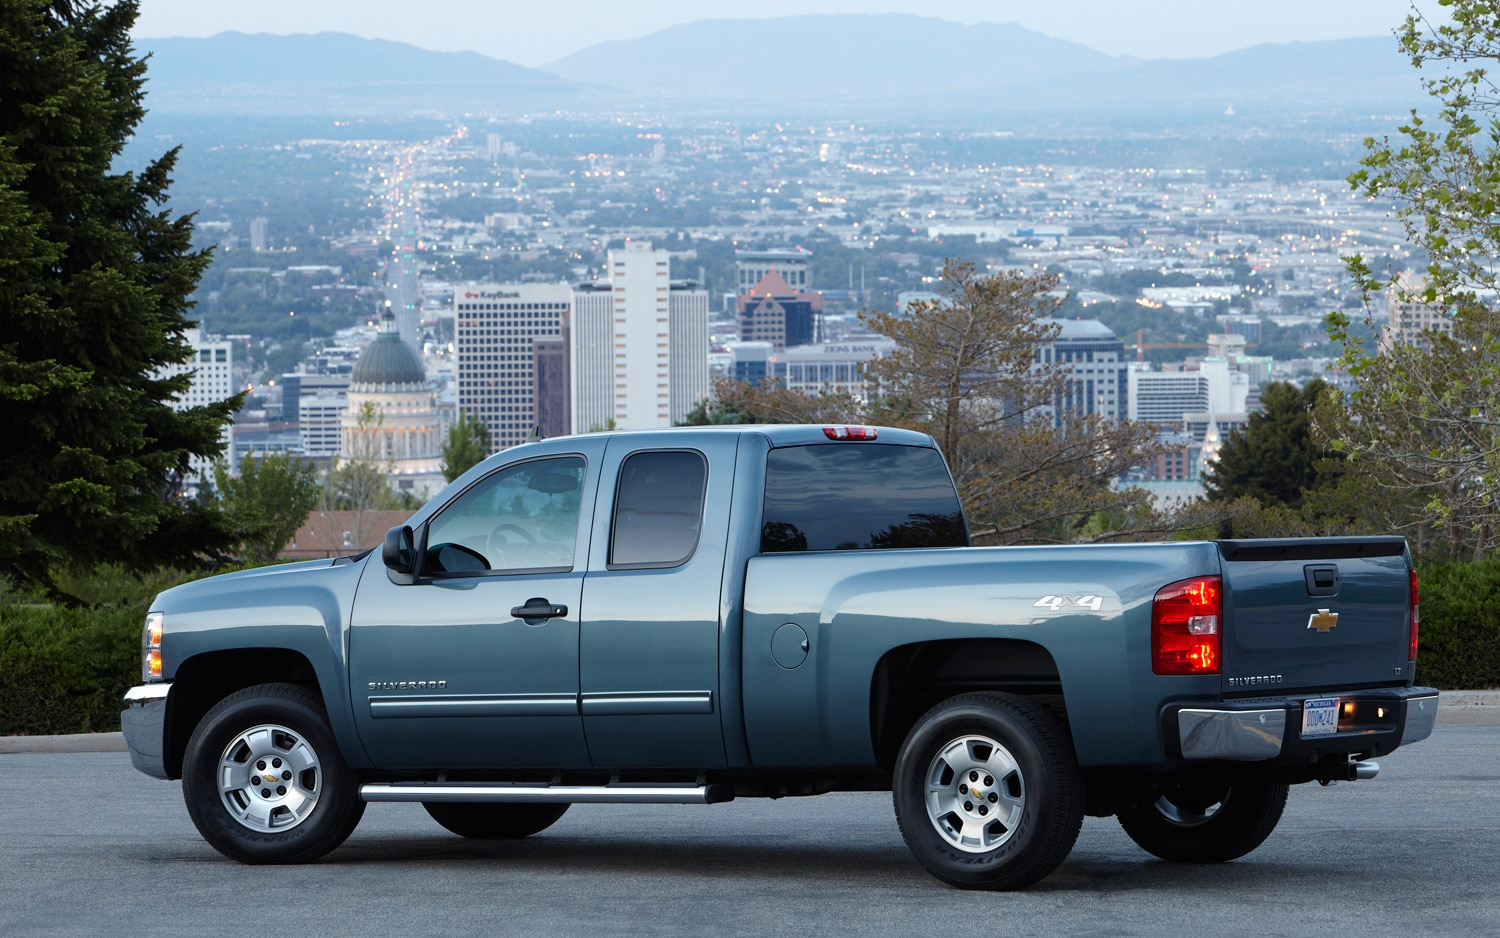 2013 Chevrolet Silverado LT Rear